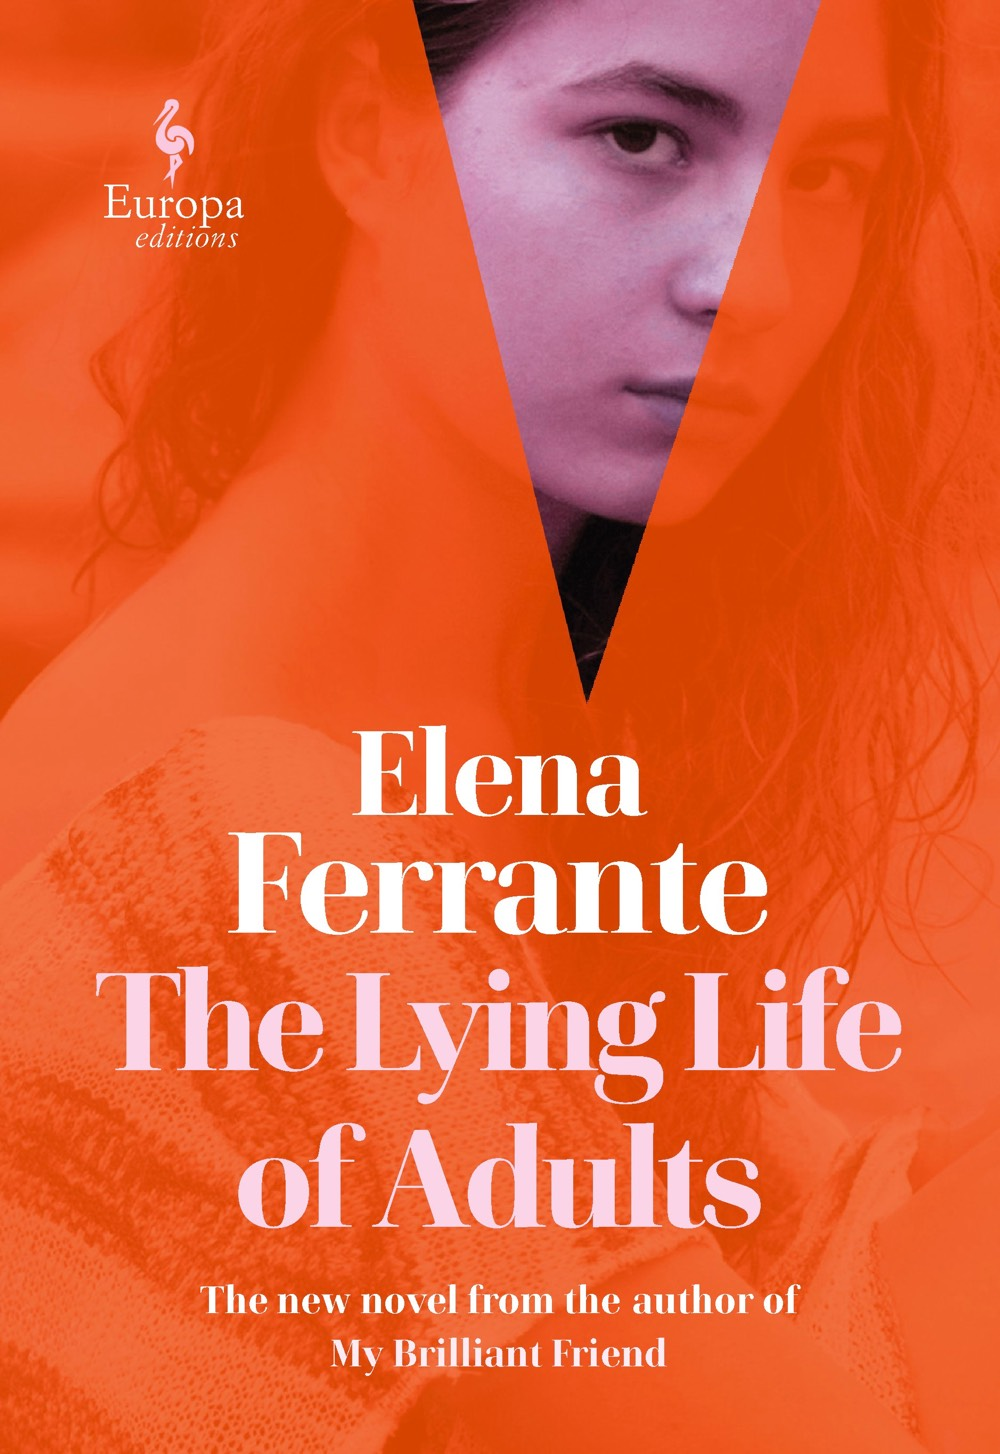 Elena Ferrante's The Lying Life of Adults